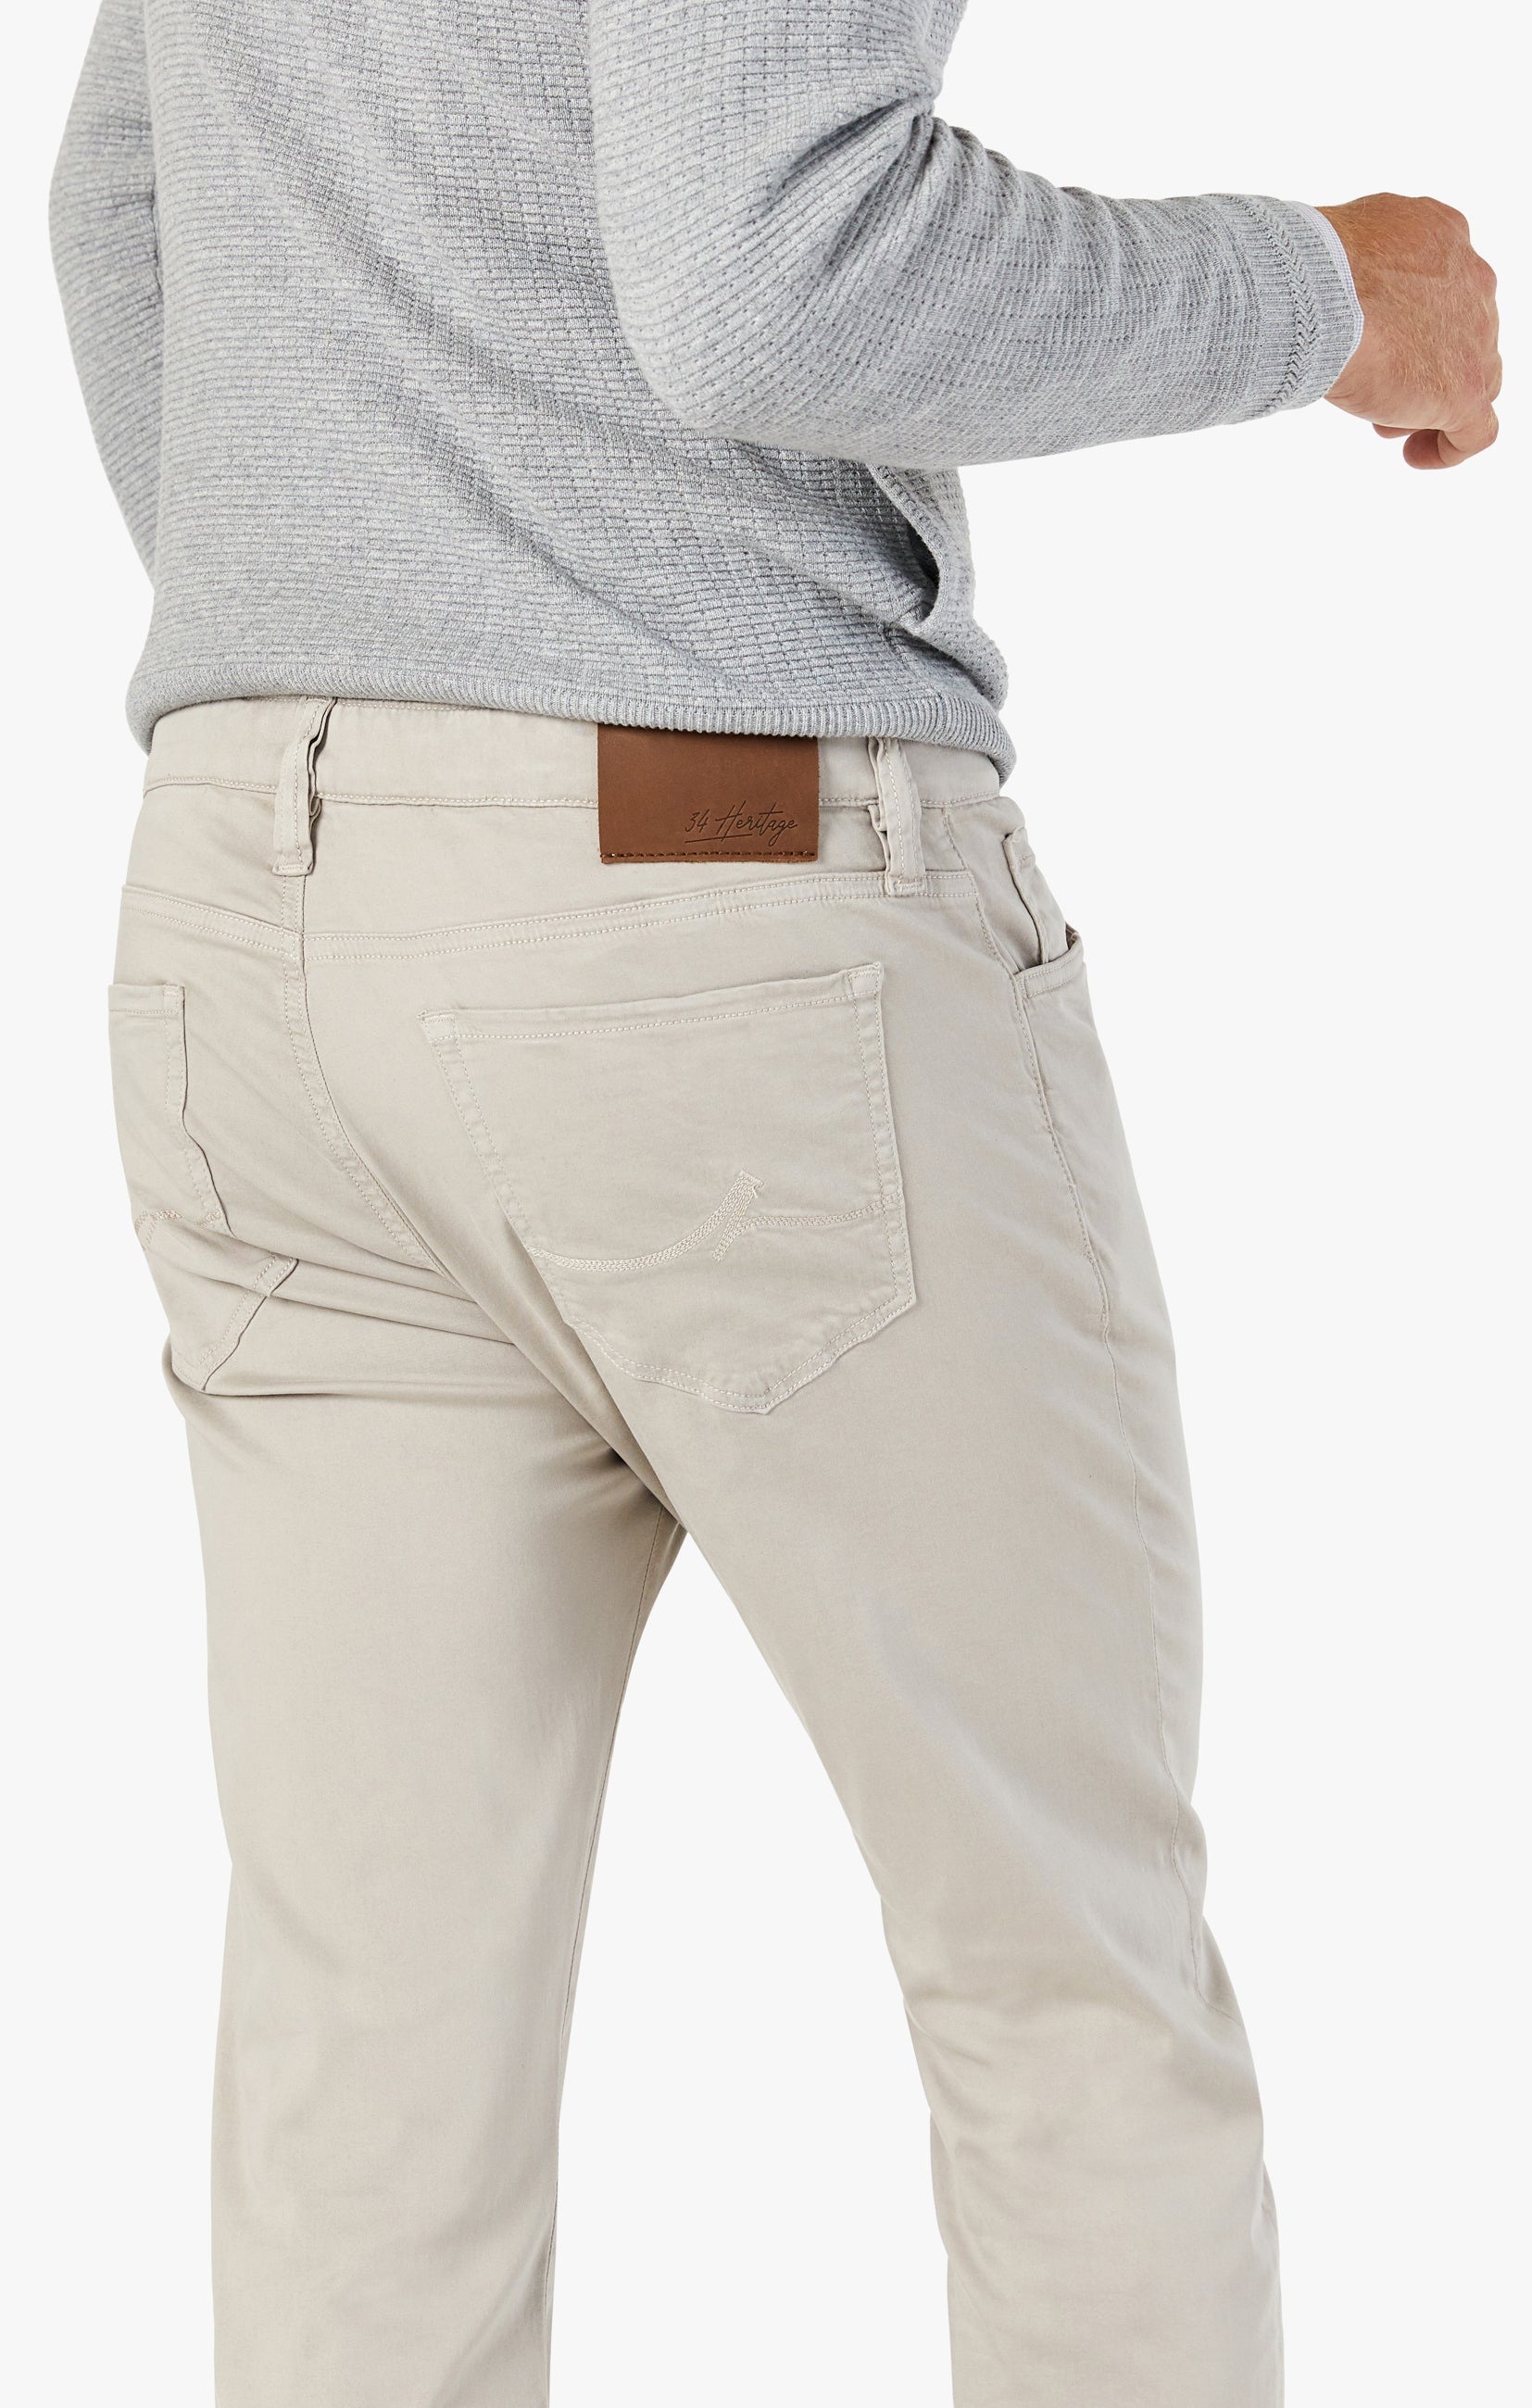 Courage Straight Leg Pants In Dawn Twill Image 5